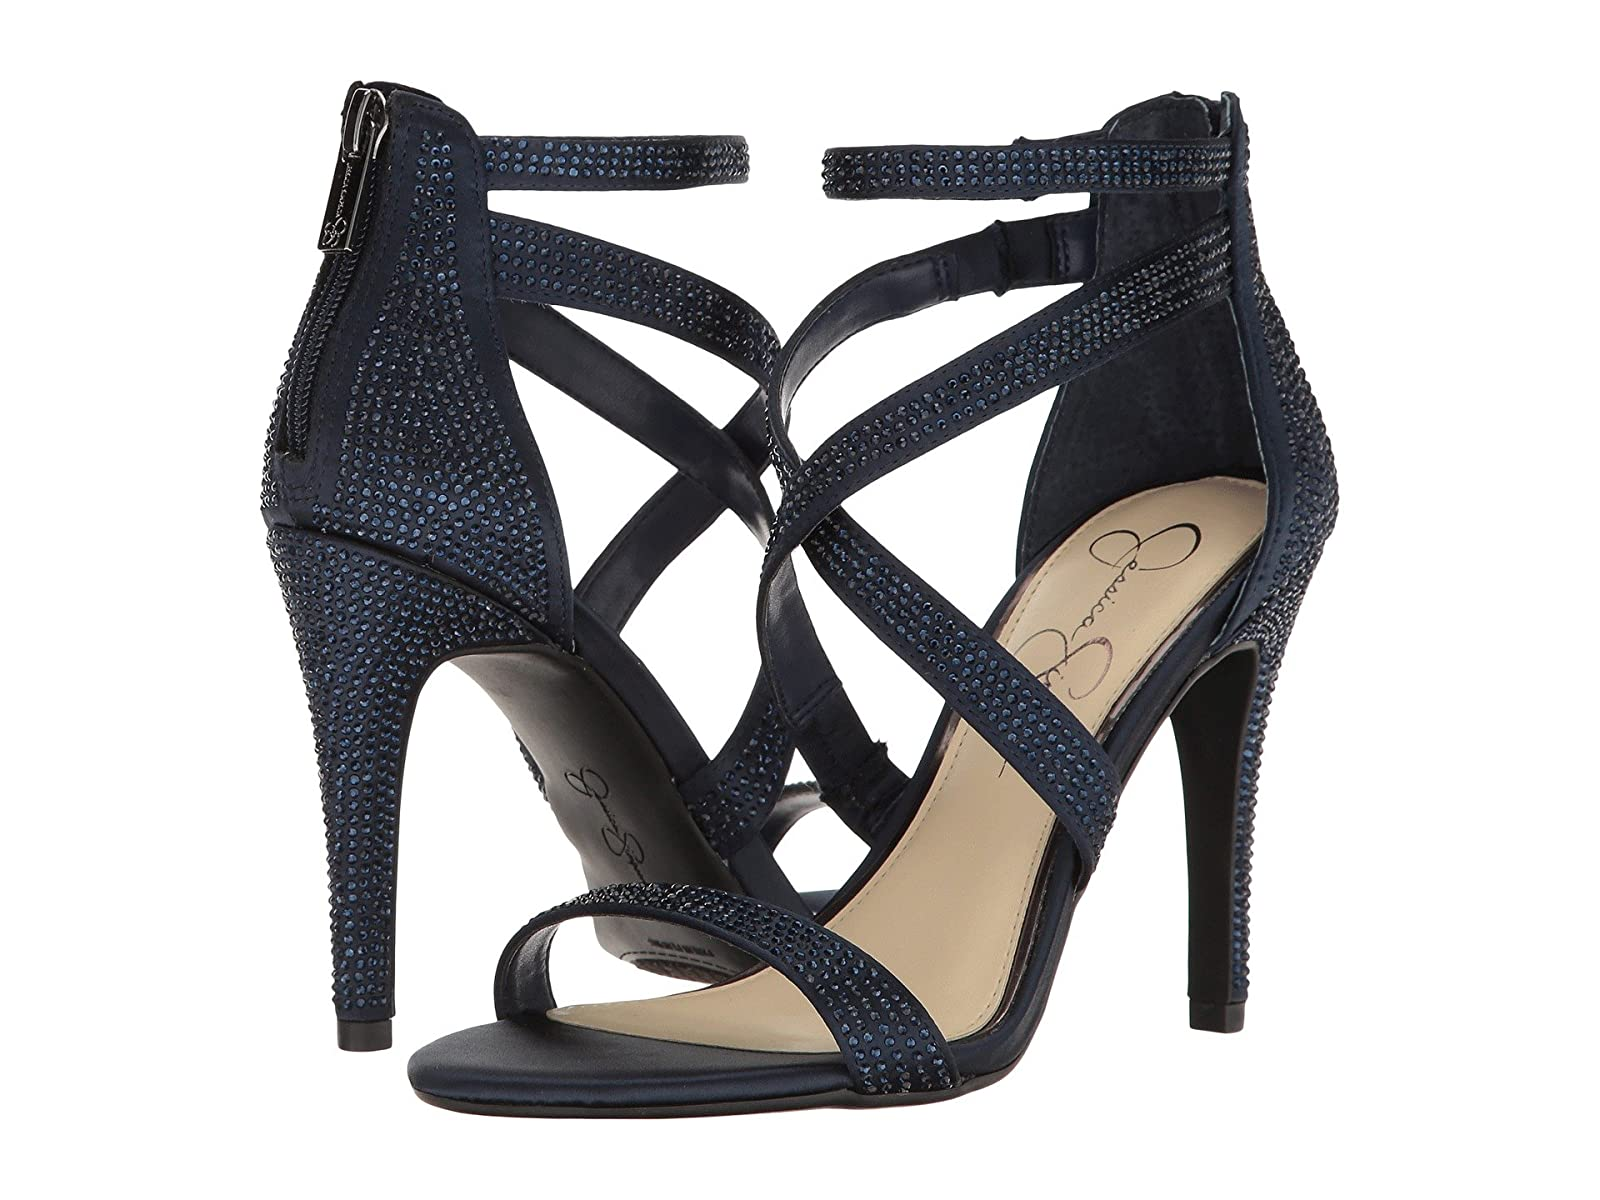 Jessica Simpson EmilynCheap and distinctive eye-catching shoes